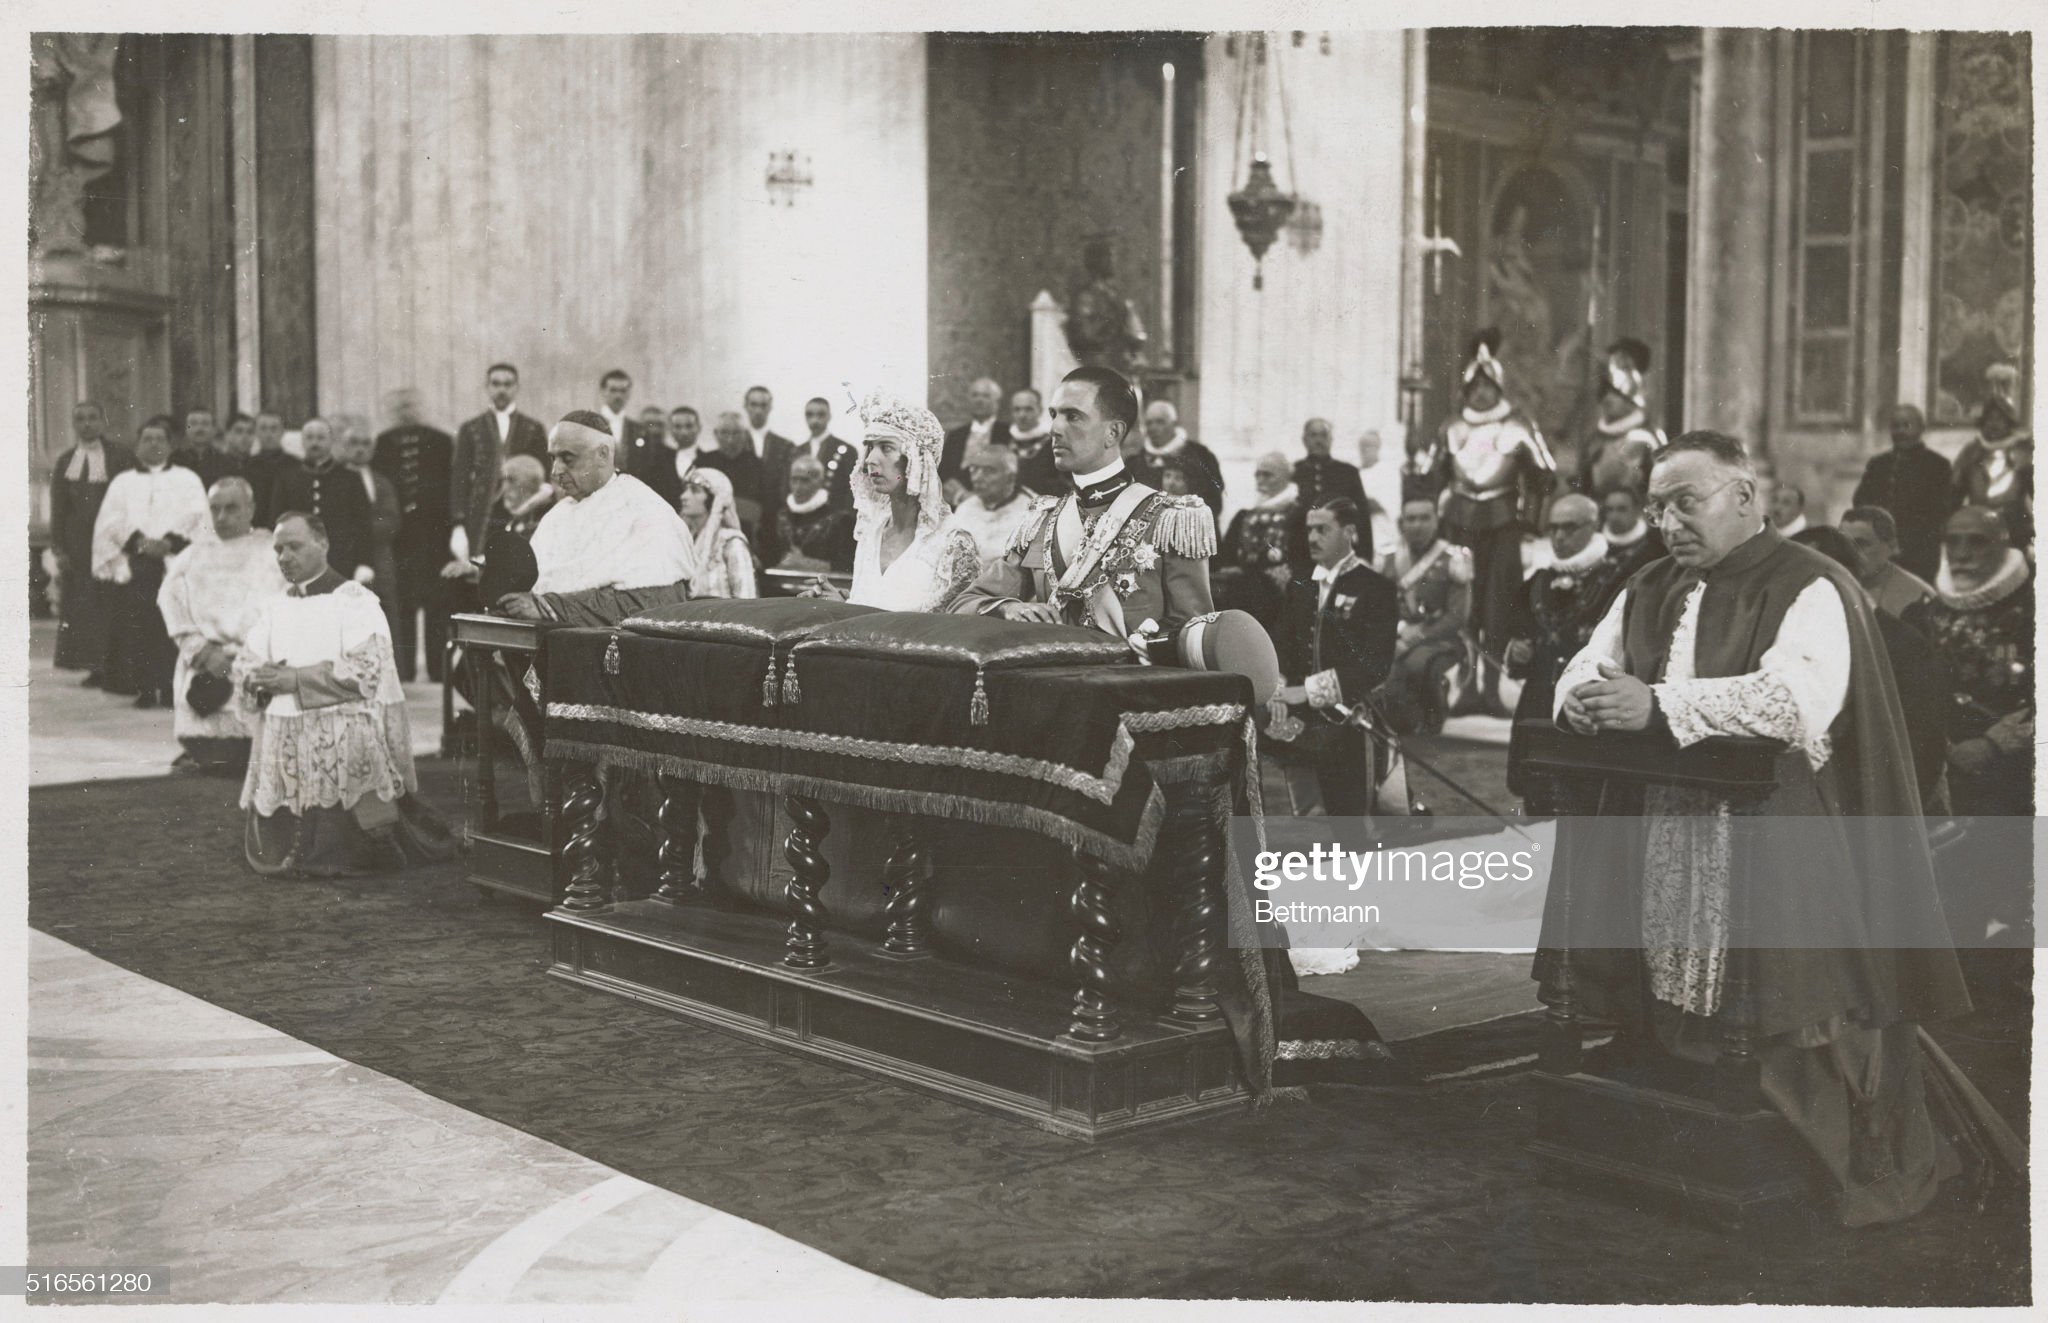 royal-bride-and-groom-at-the-altar-during-their-wedding-rome-italy-picture-id516561280